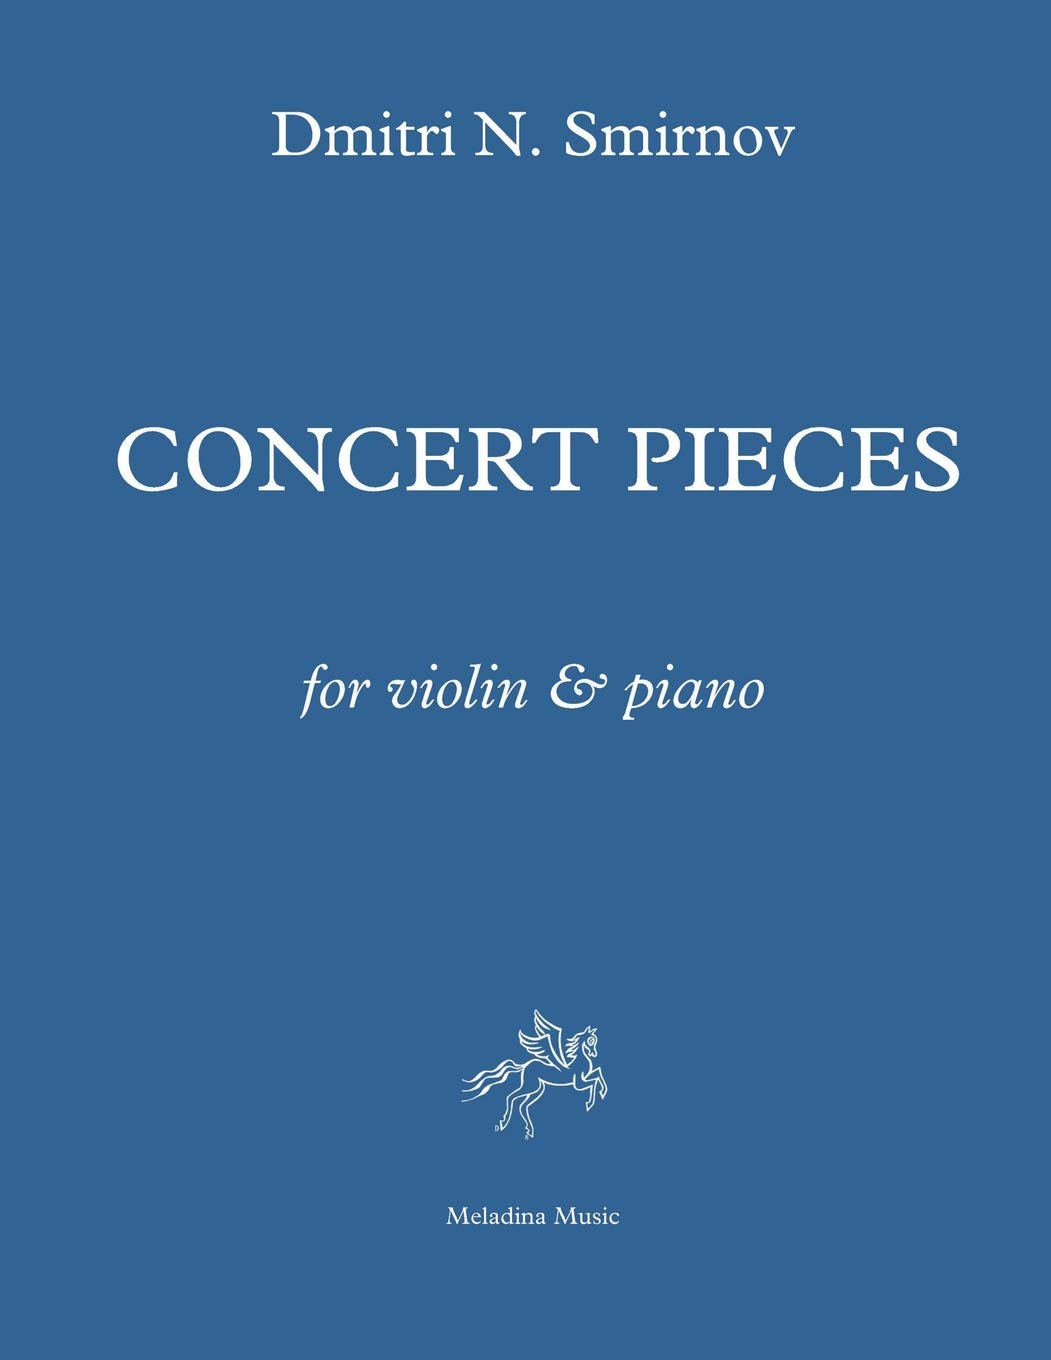 Download Concert Pieces for violin and piano: Score and part (Meladina Music Series) (Volume 22) PDF